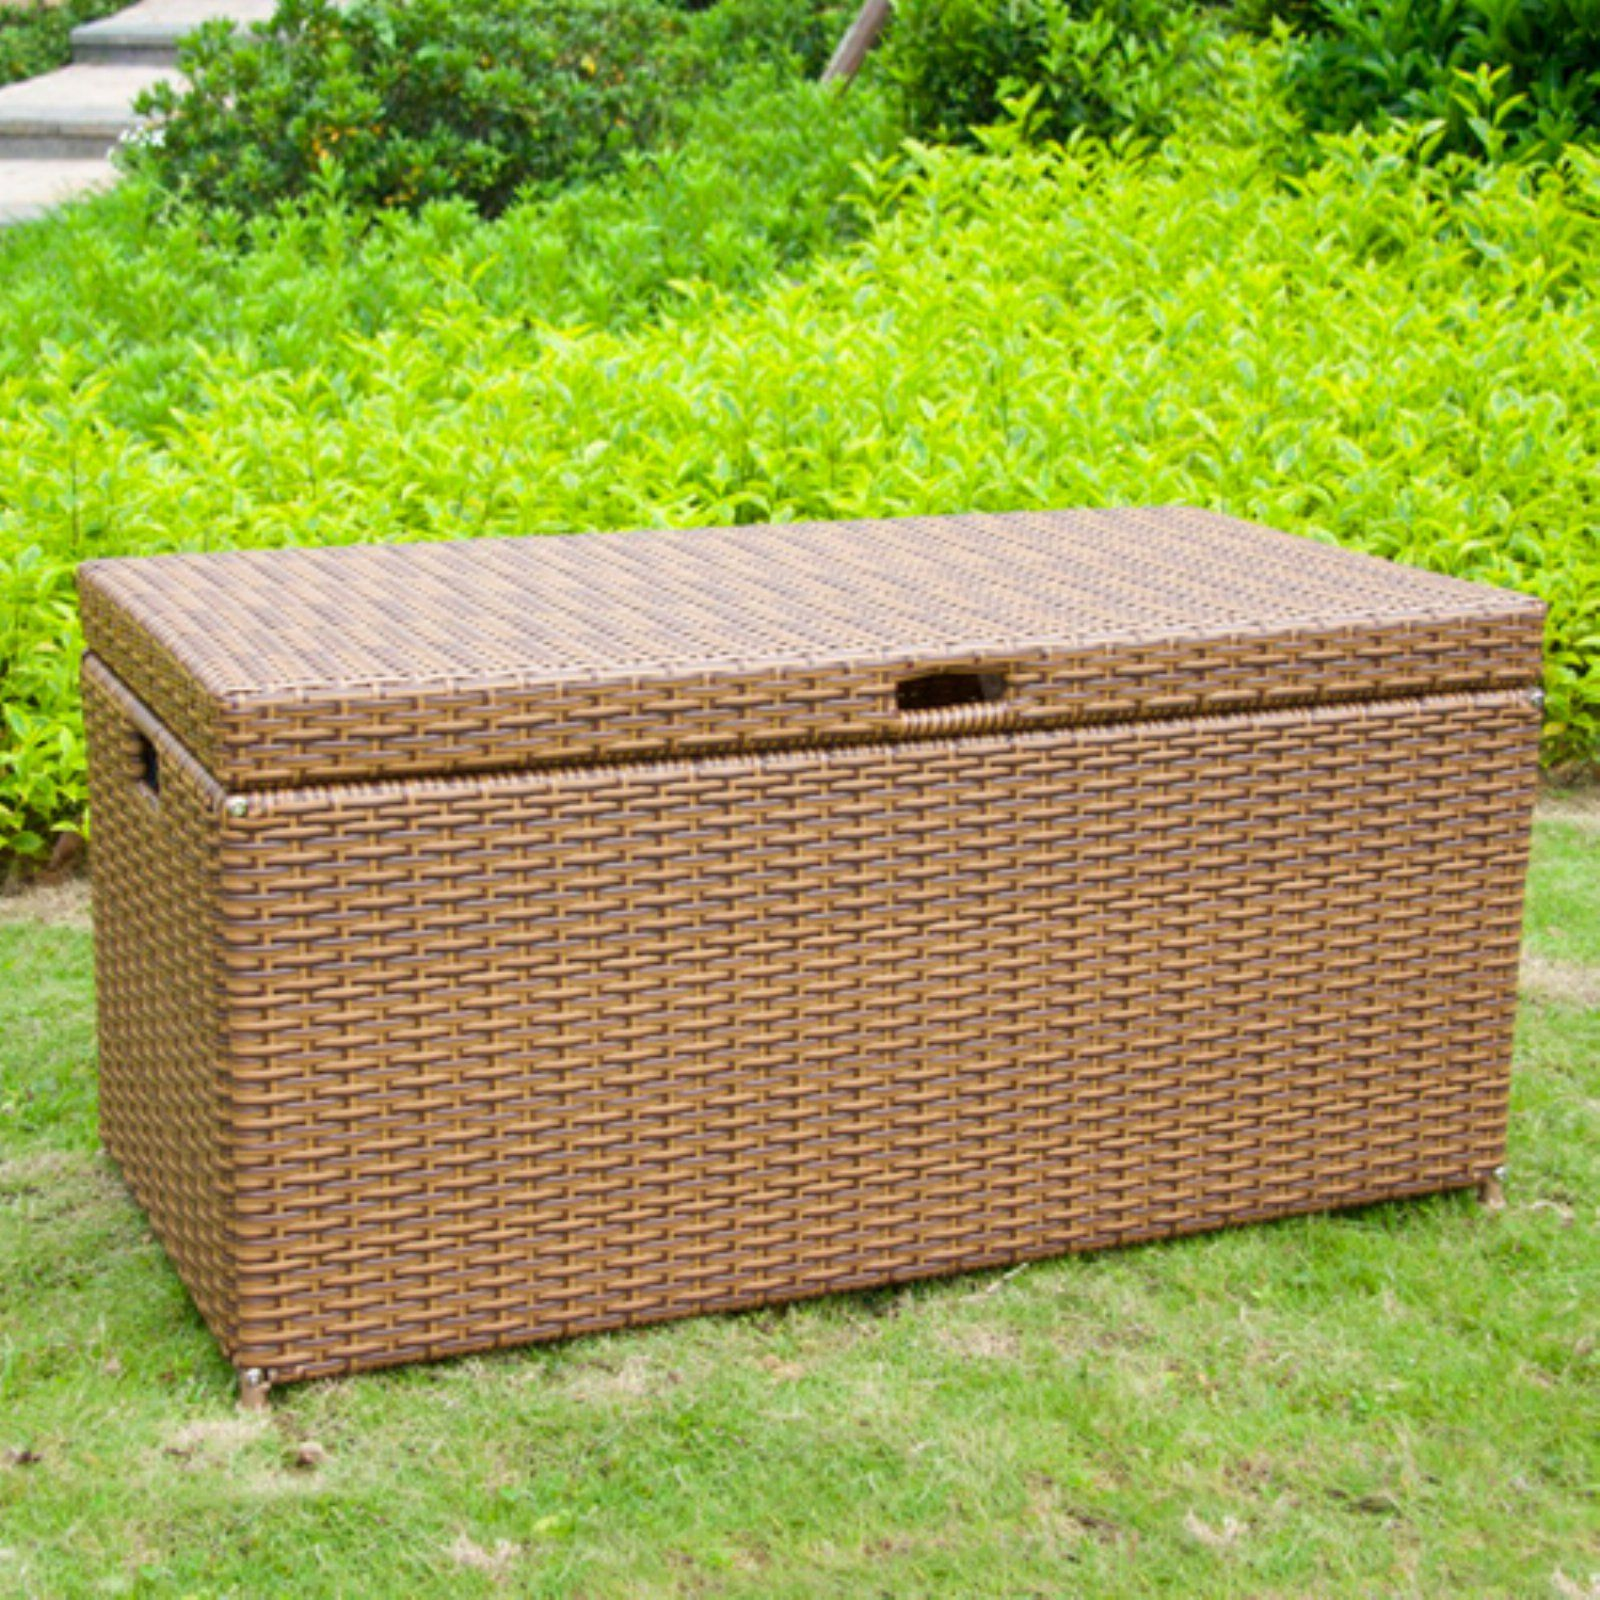 Jeco 40 In Outdoor Wicker Patio Furniture 65 Gallon Storage Deck